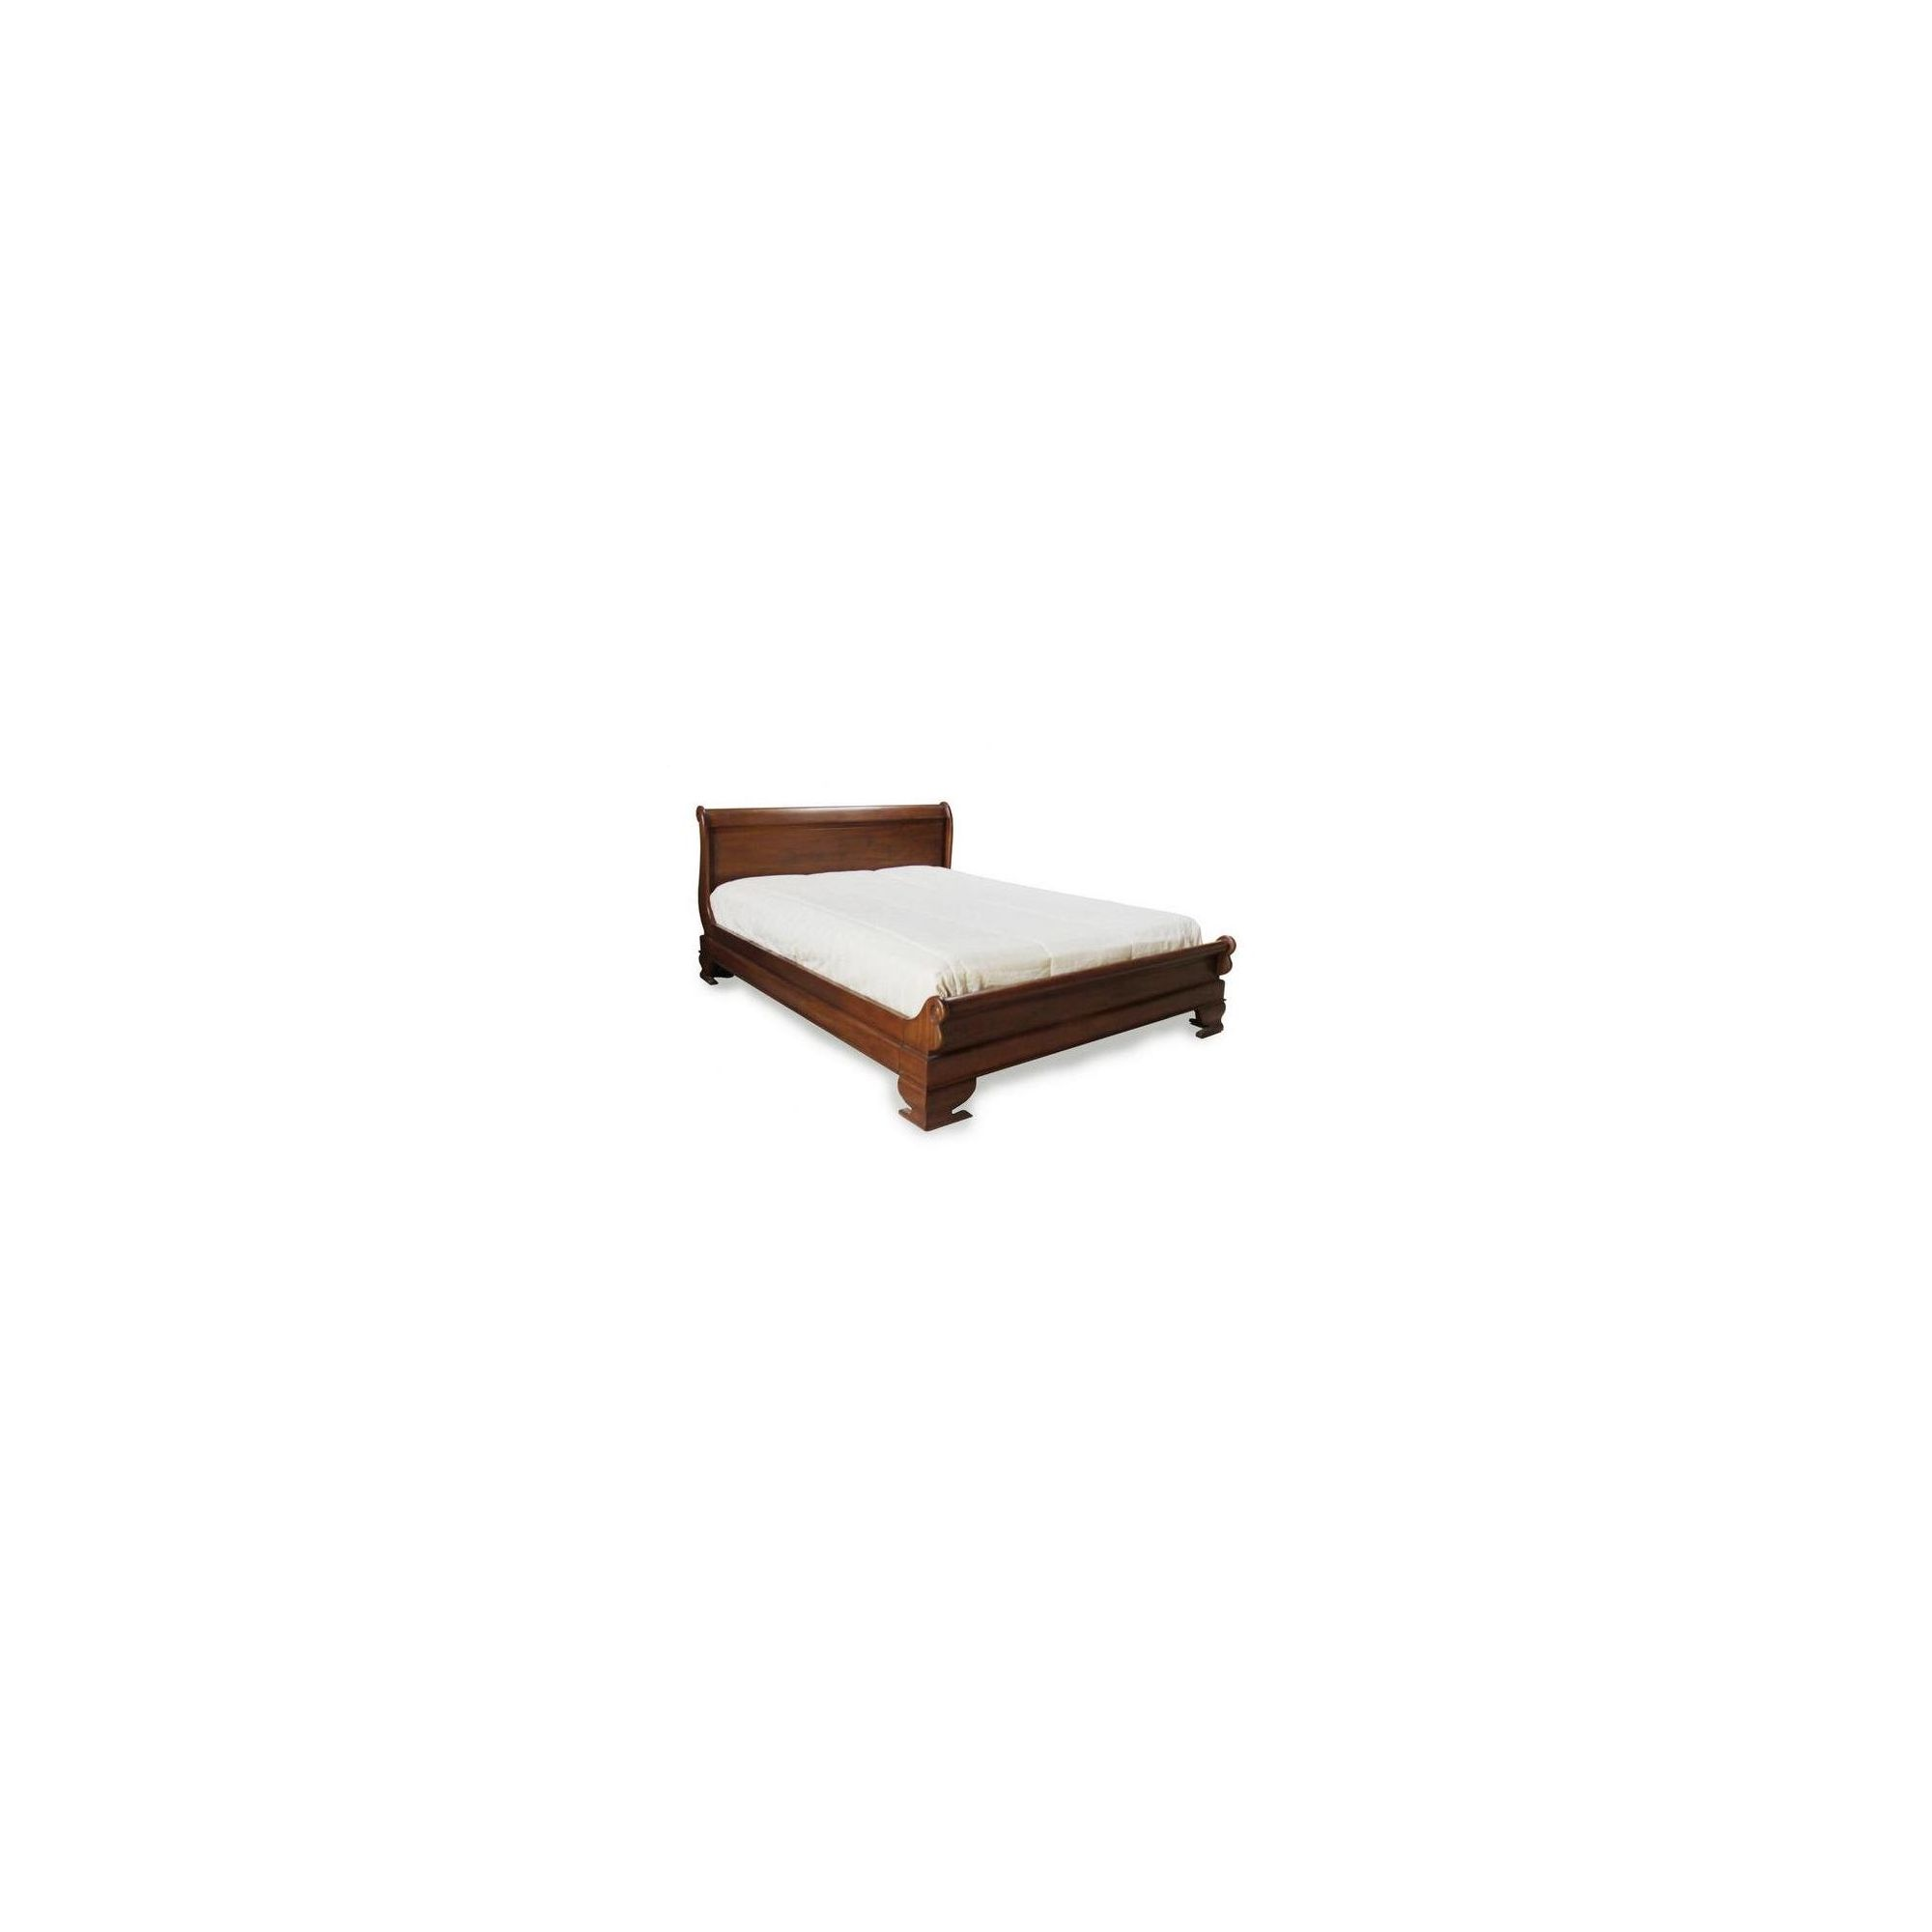 Lock stock and barrel Mahogany Sleigh Bed with Low Footboard in Mahogany - Double - Wax at Tesco Direct